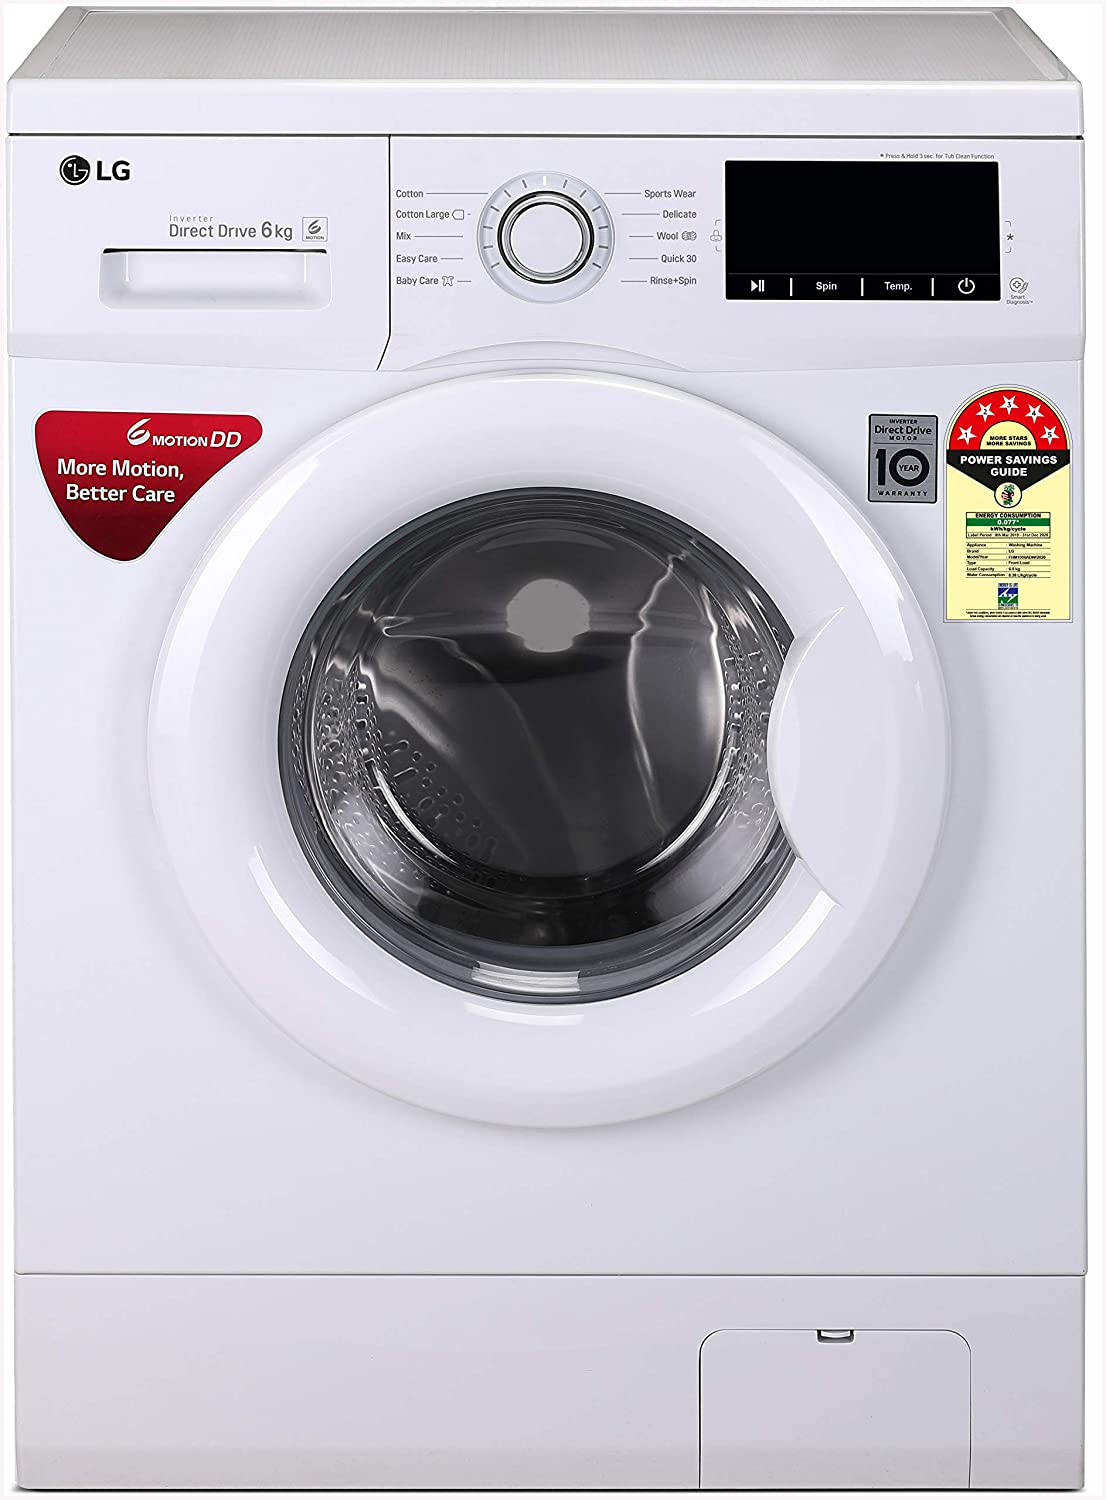 Best fully automatic top/front load washing machines in India 2020